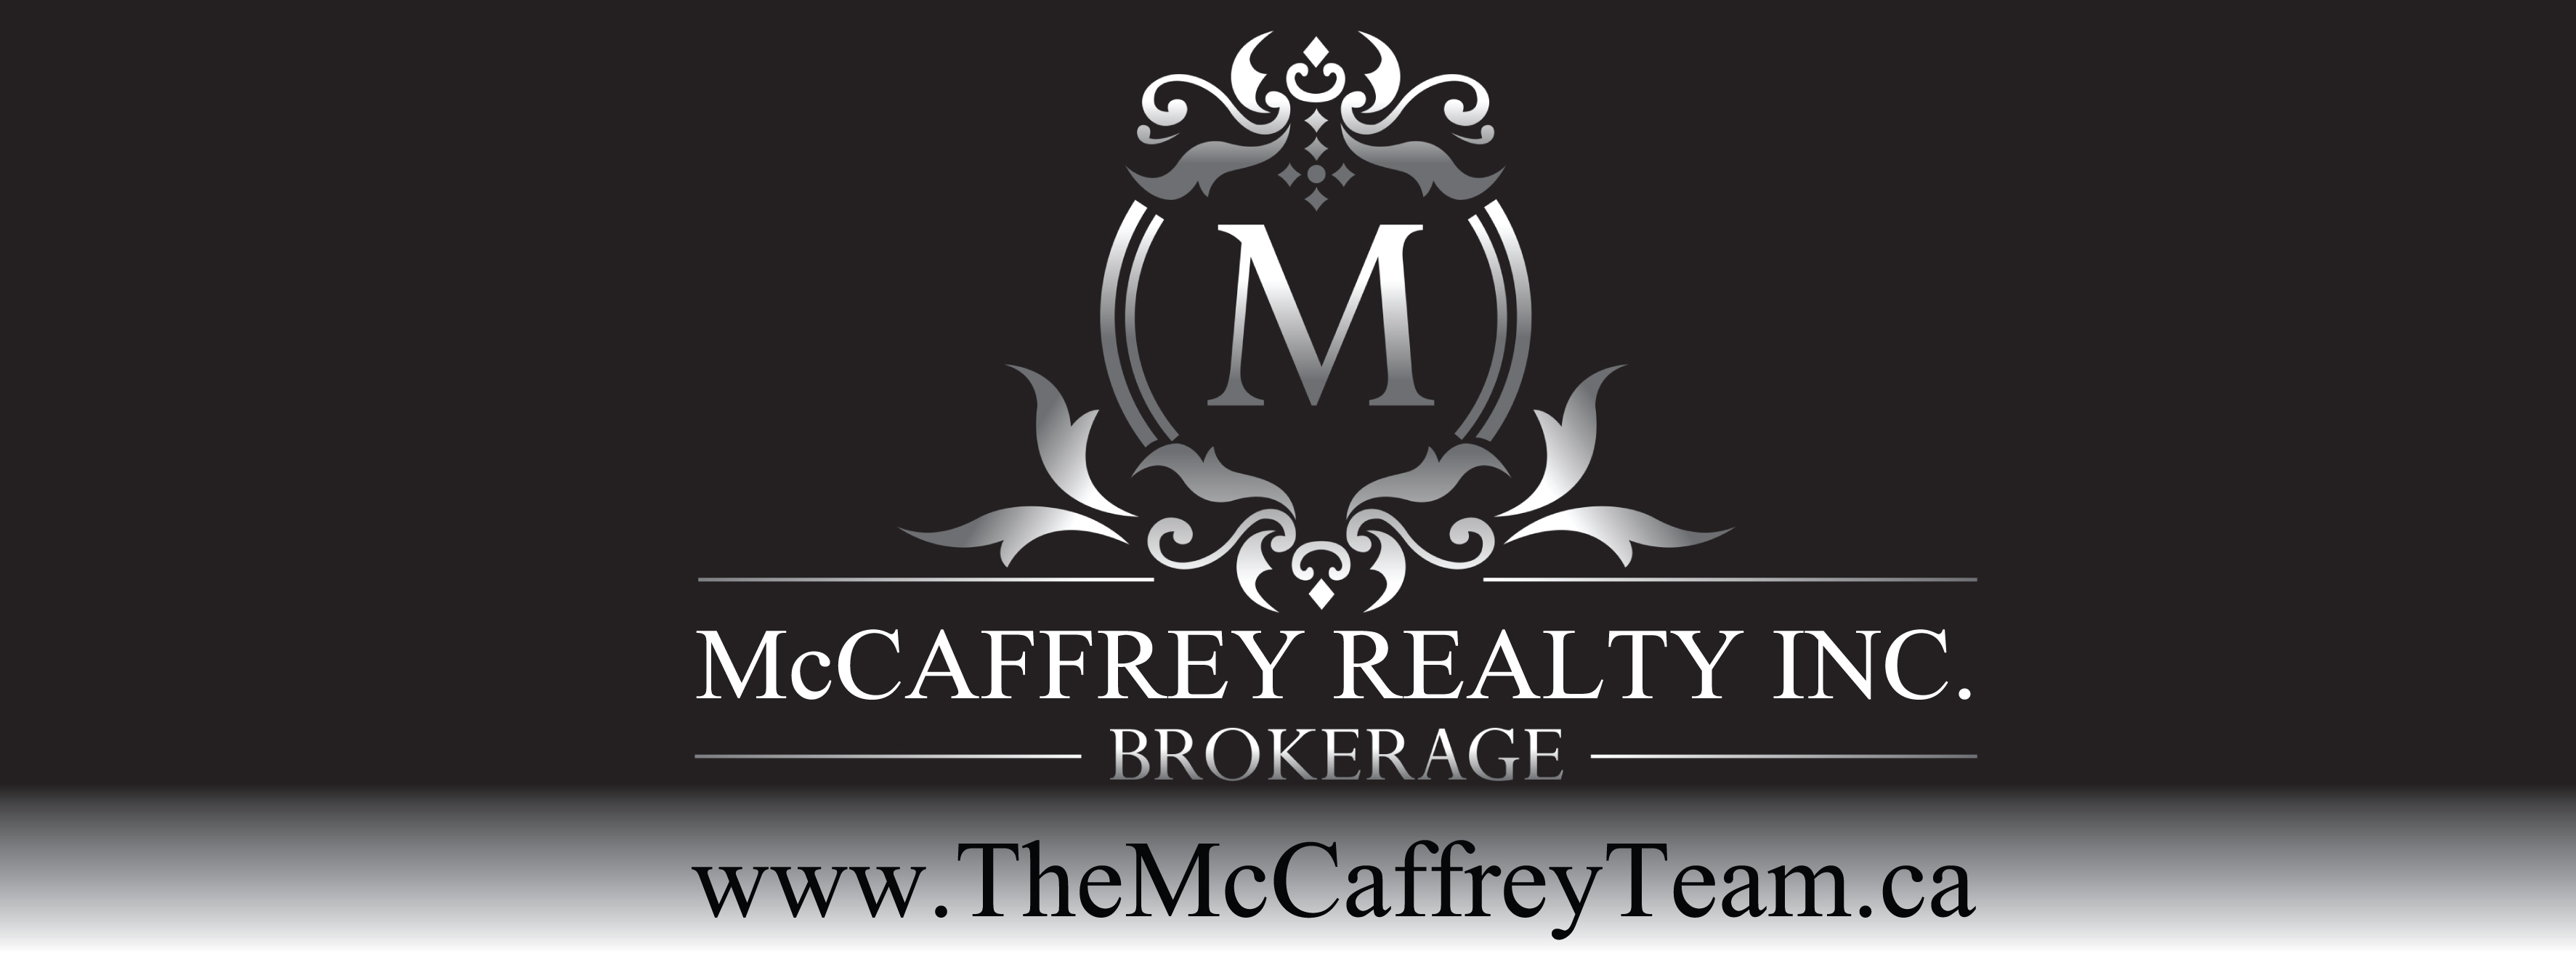 McCaffrey Realty Inc., Brokerage